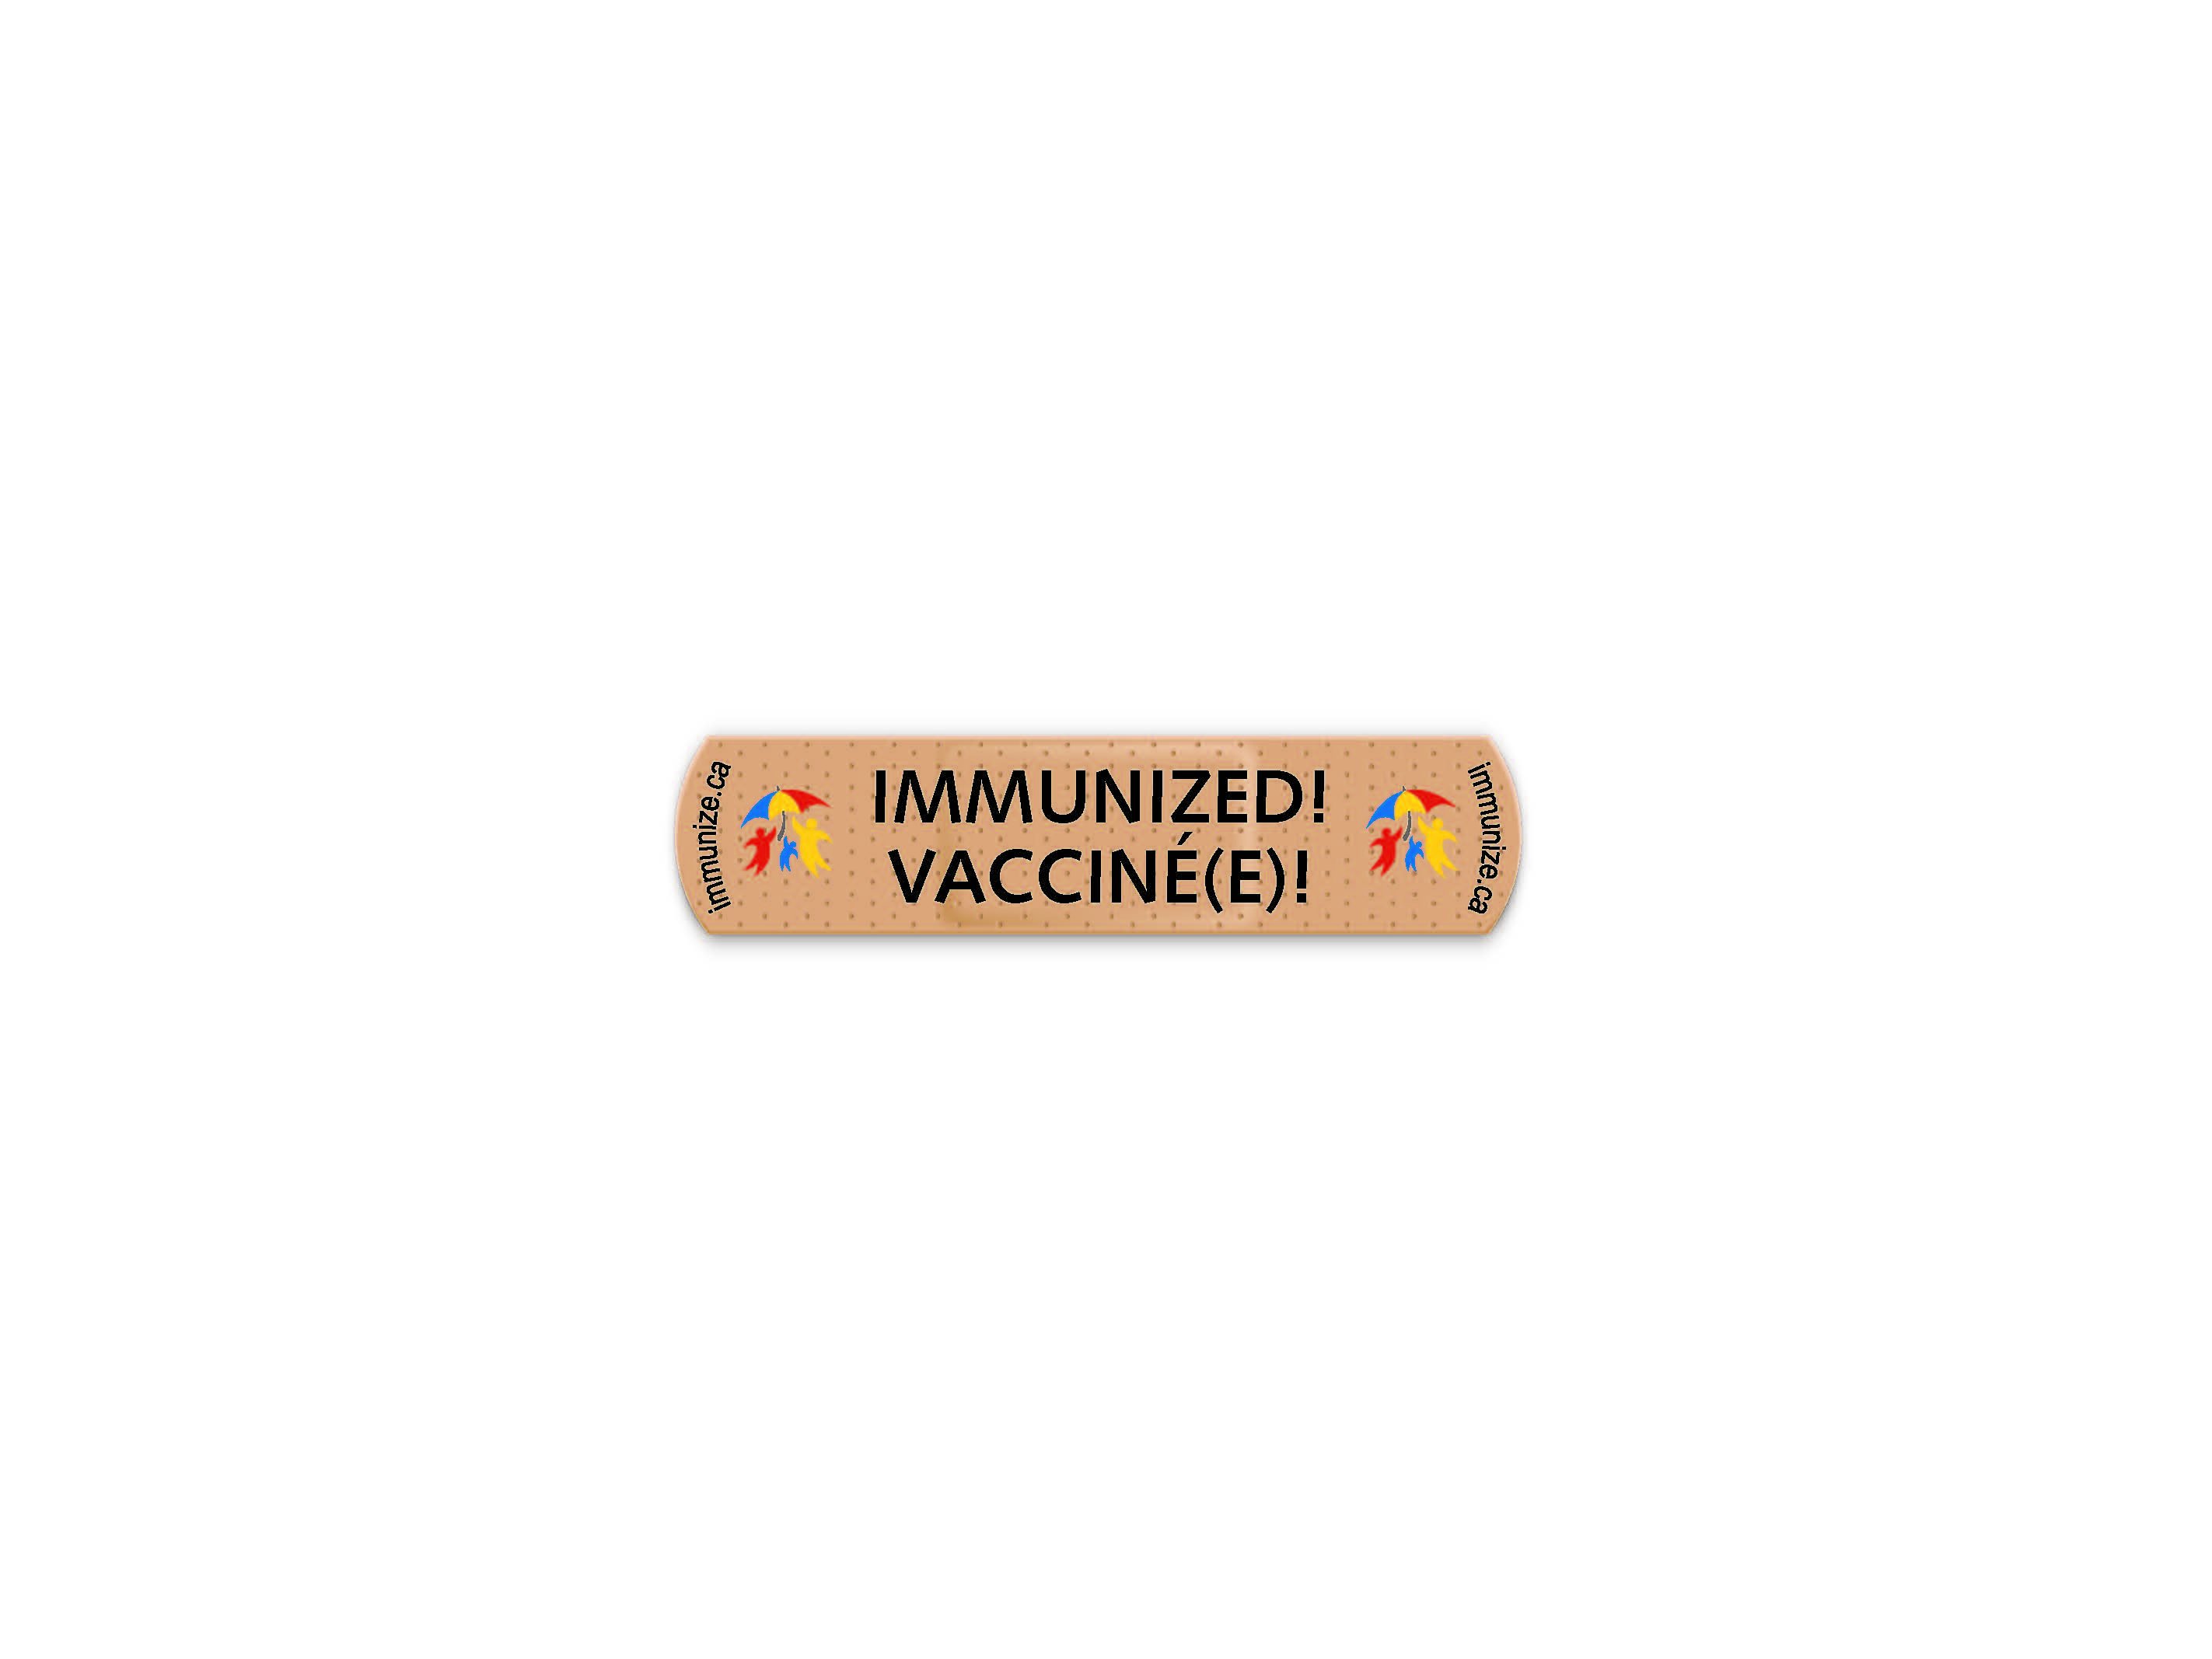 Immunize Bandaid Sticker.jpg